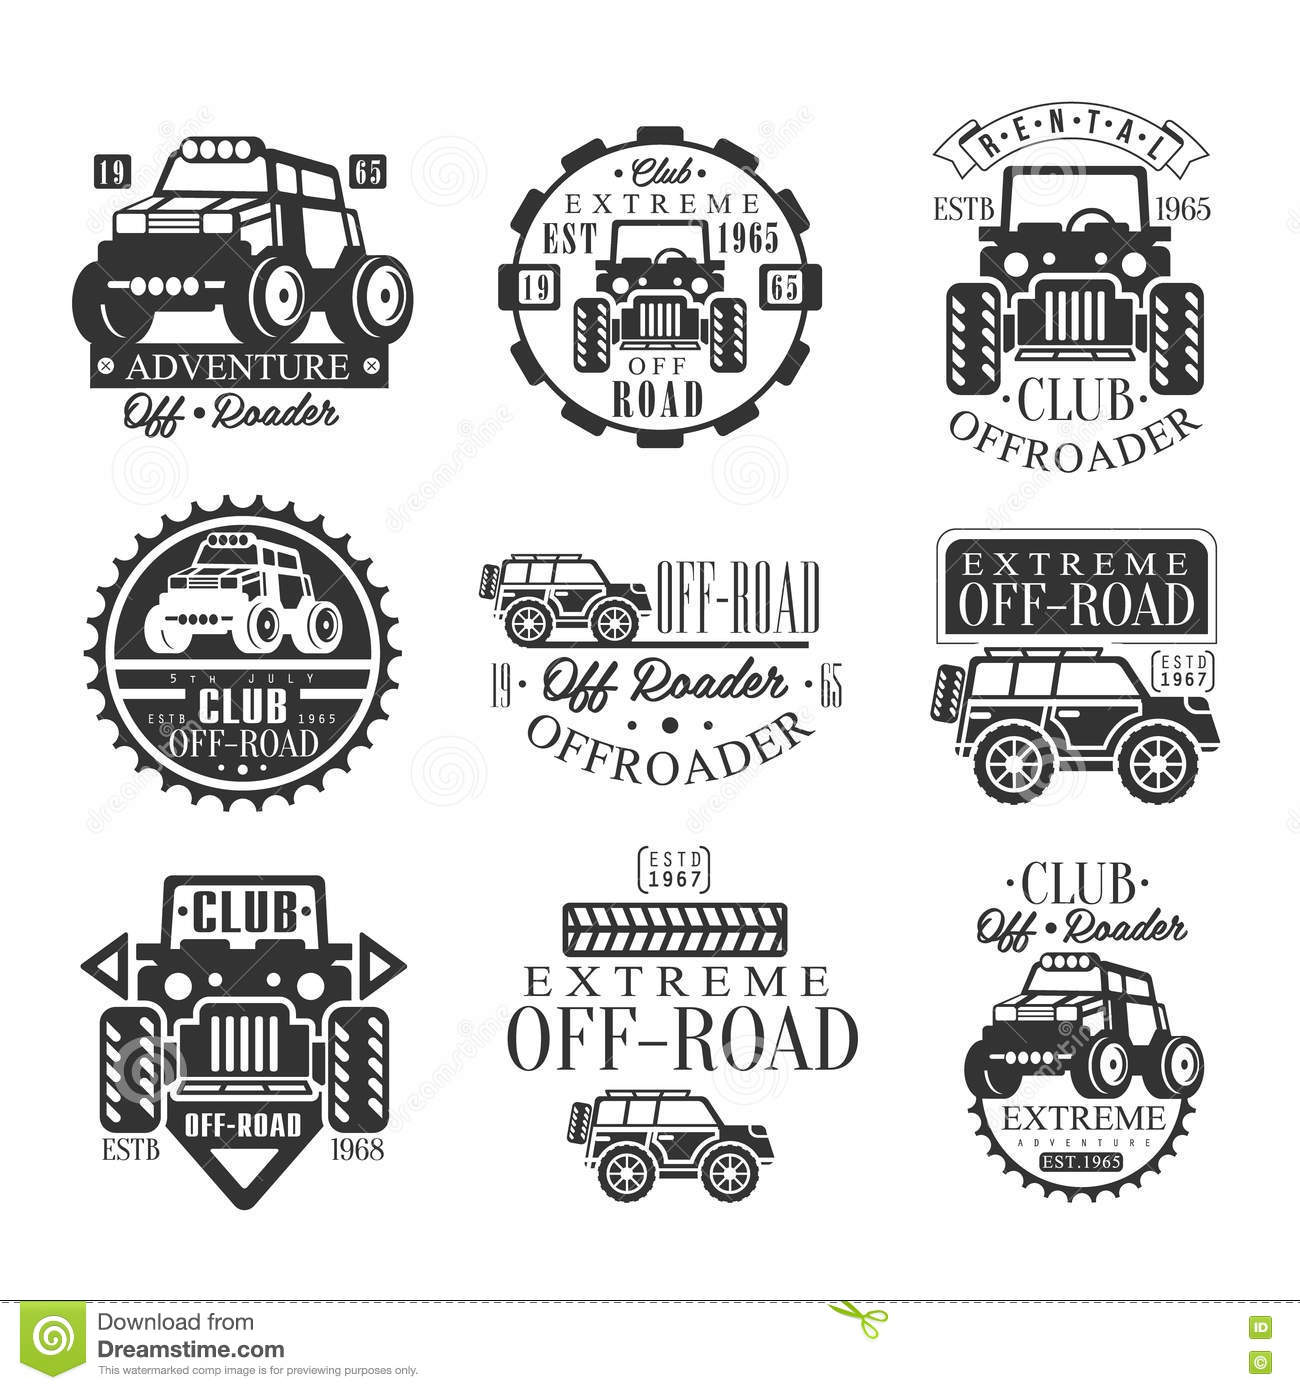 Quad Bike Rental Club Set Of Emblems With Black And White